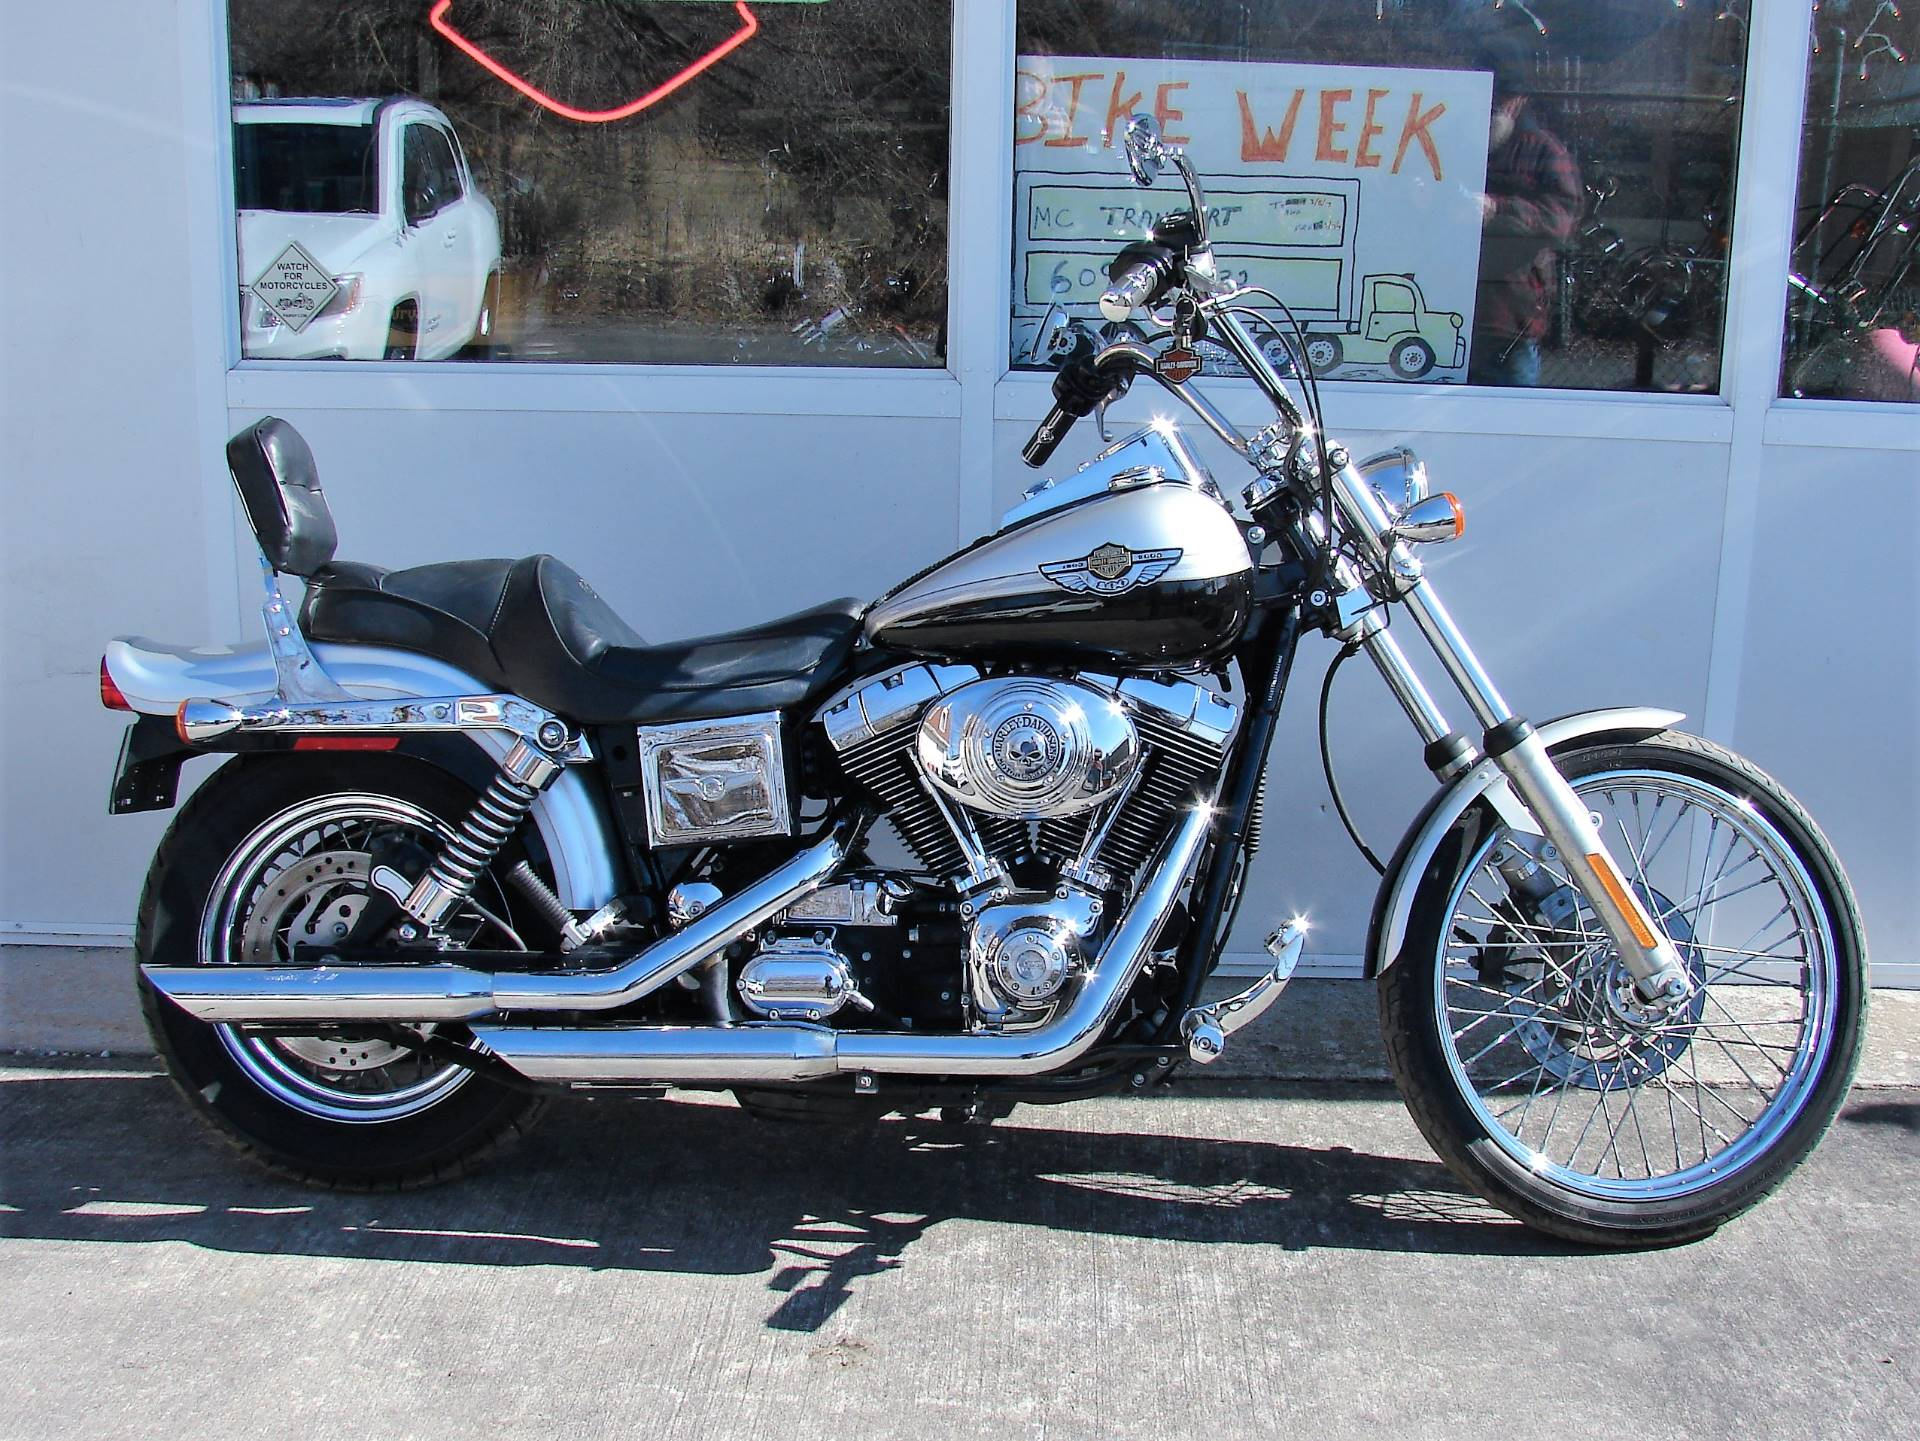 2003 Harley-Davidson FXDWG Dyna Wide Glide (Anniversary Edition) in Williamstown, New Jersey